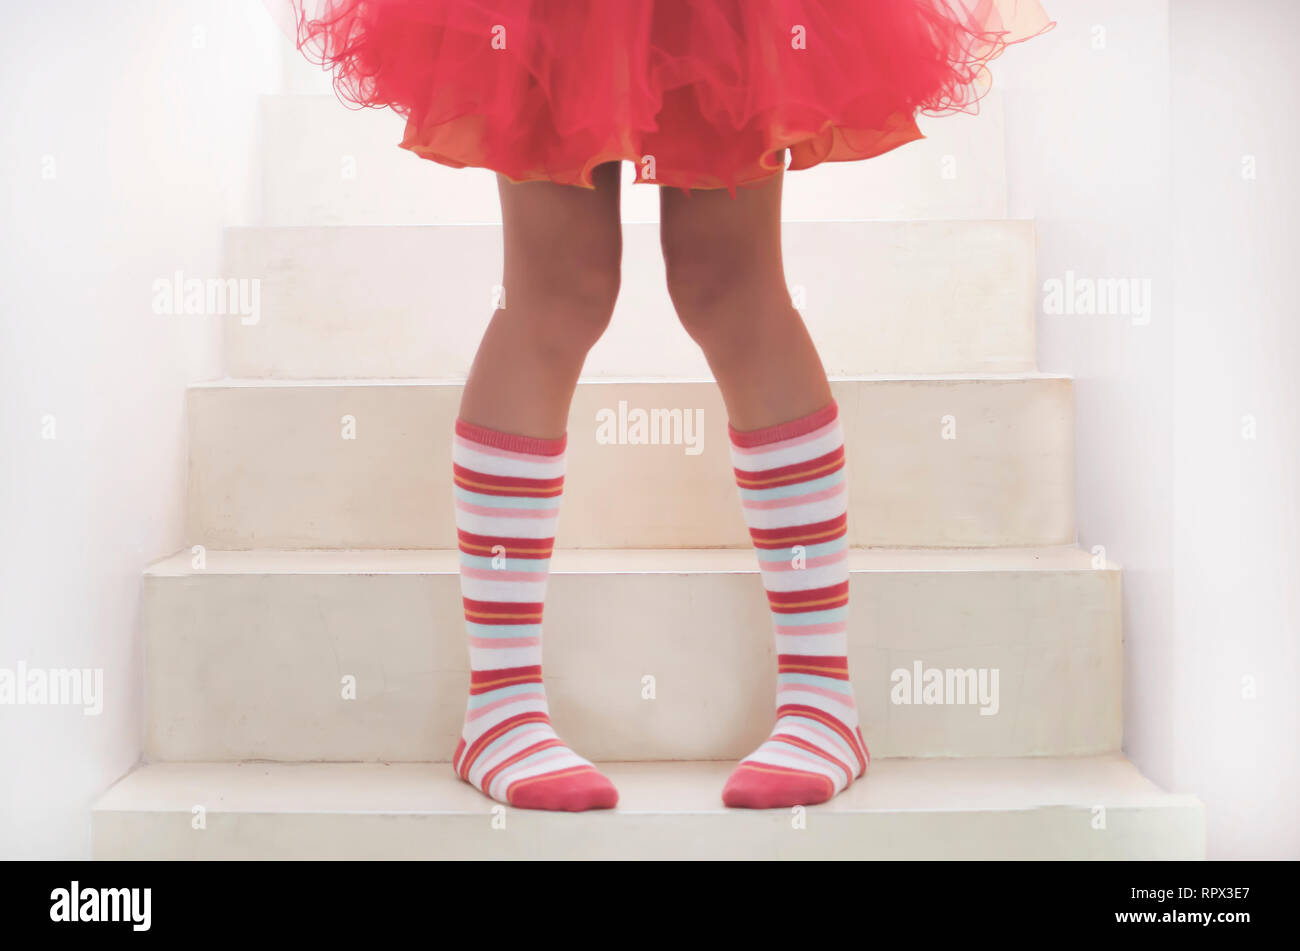 da8dfc45cd0 Girl standing on staircase wearing knee high socks and a tutu - Stock Image